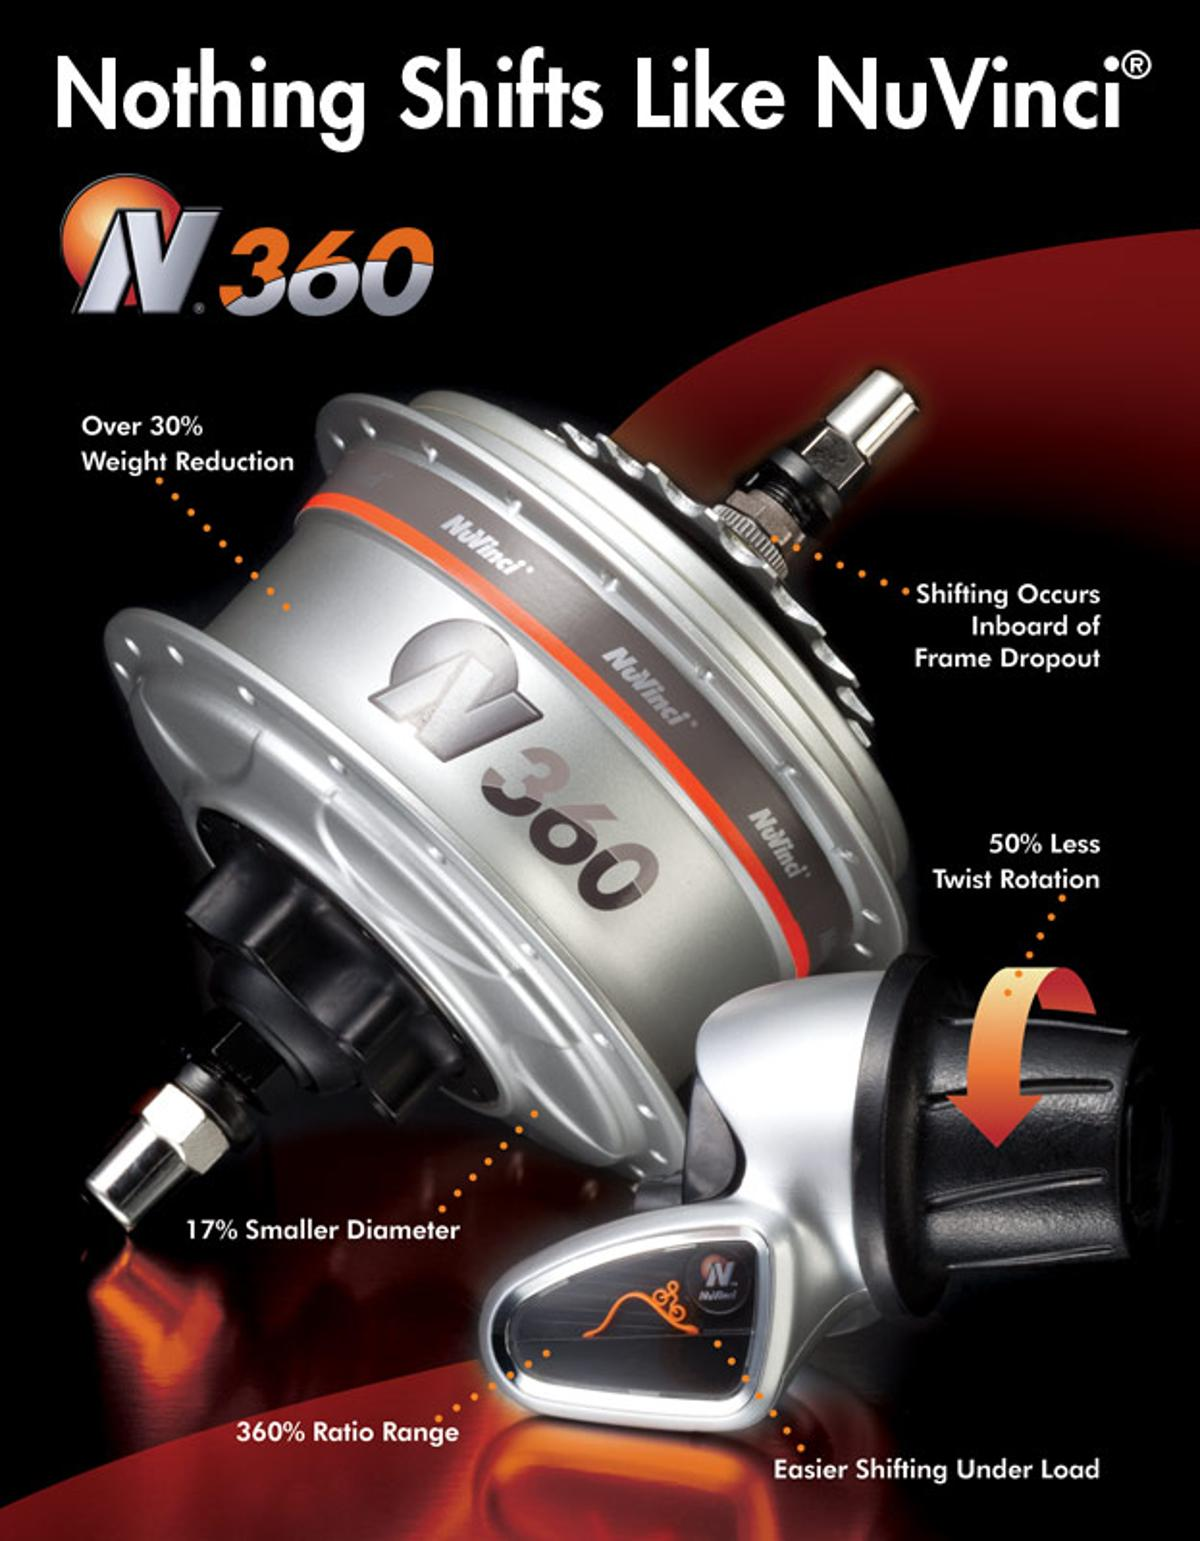 The NuVinci N360 Continuously Variable Planetary (CVP) transmission for bicycles